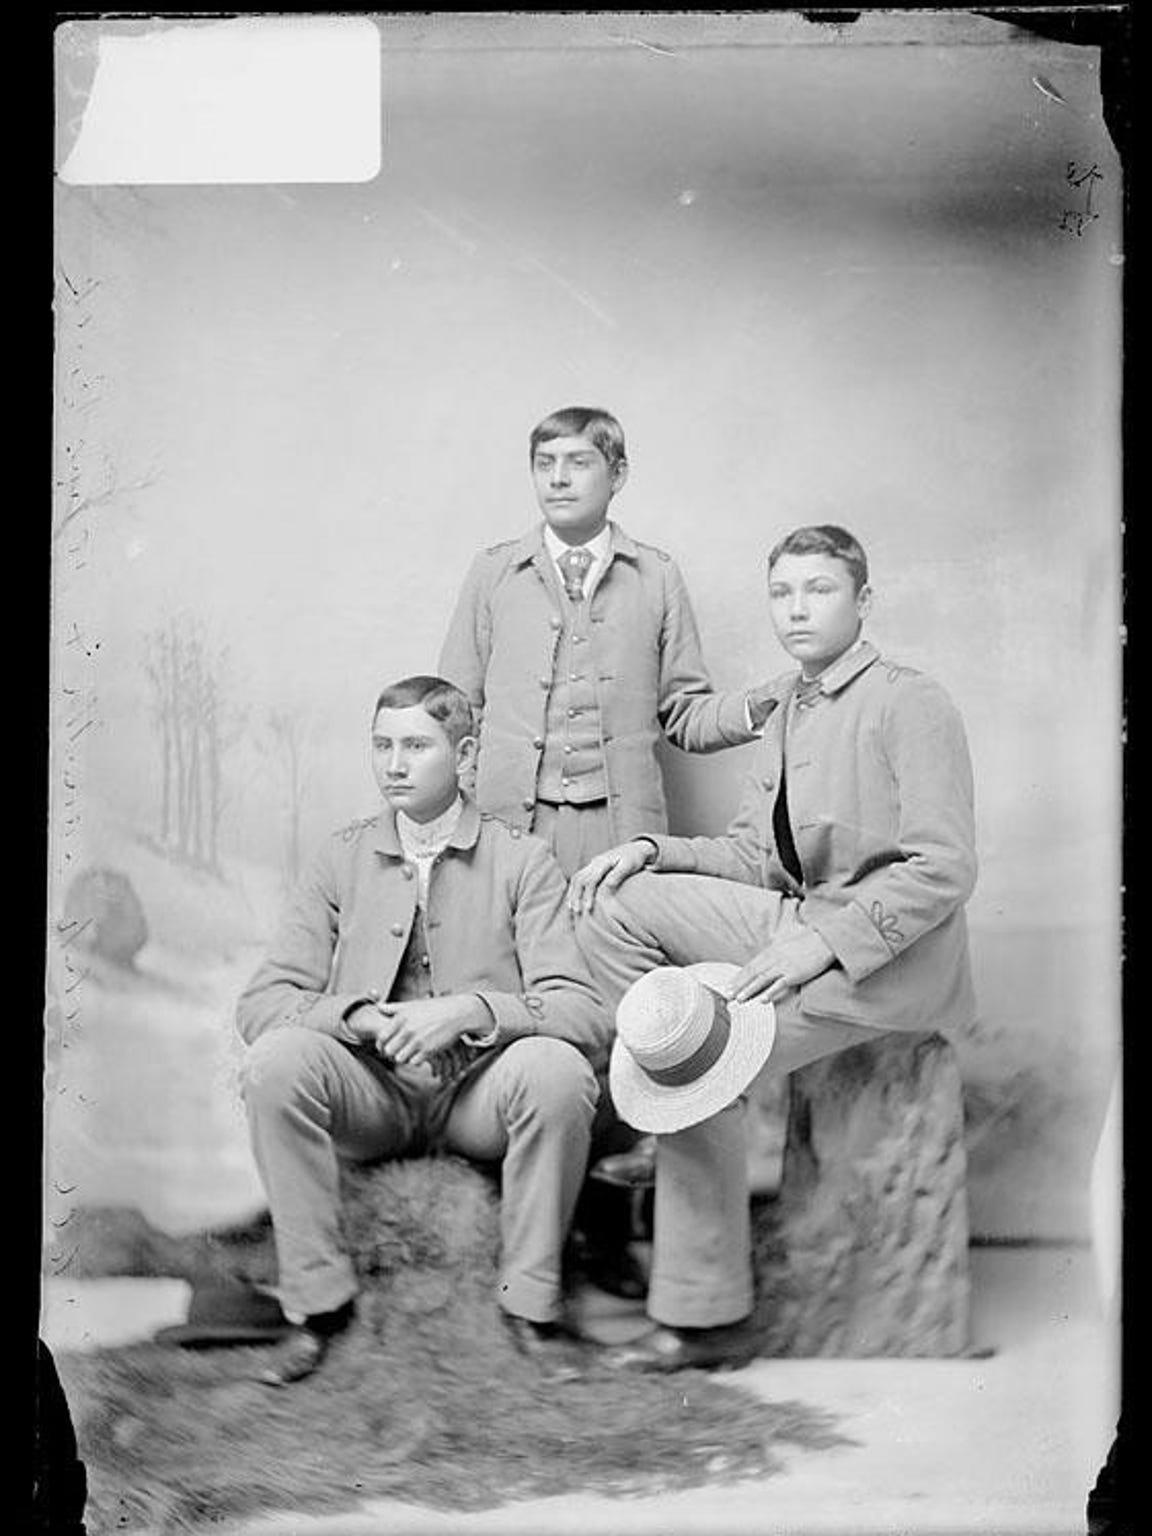 One of the few known photographs of George Ell (seated left) next to two unidentified fellow students. The photograph was likely taken shortly after Ell was enrolled at the Carlisle Indian Industrial School